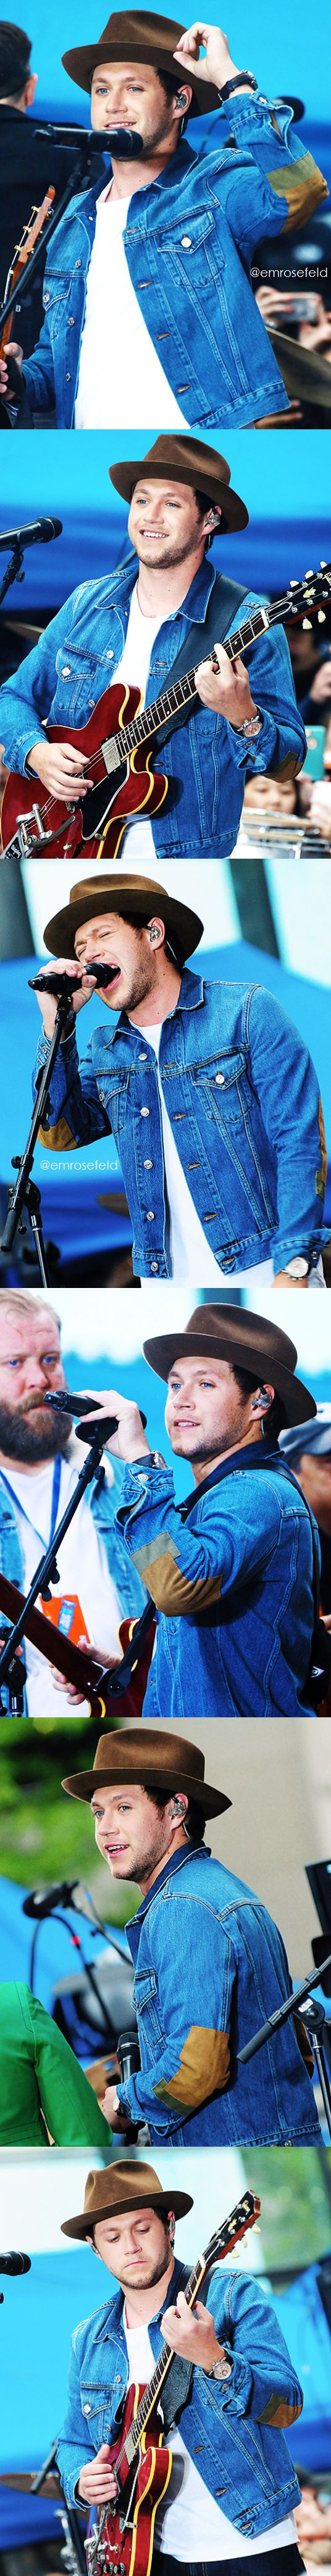 Niall Horan | on the Today Show 5.29.17 | emrosefeld |